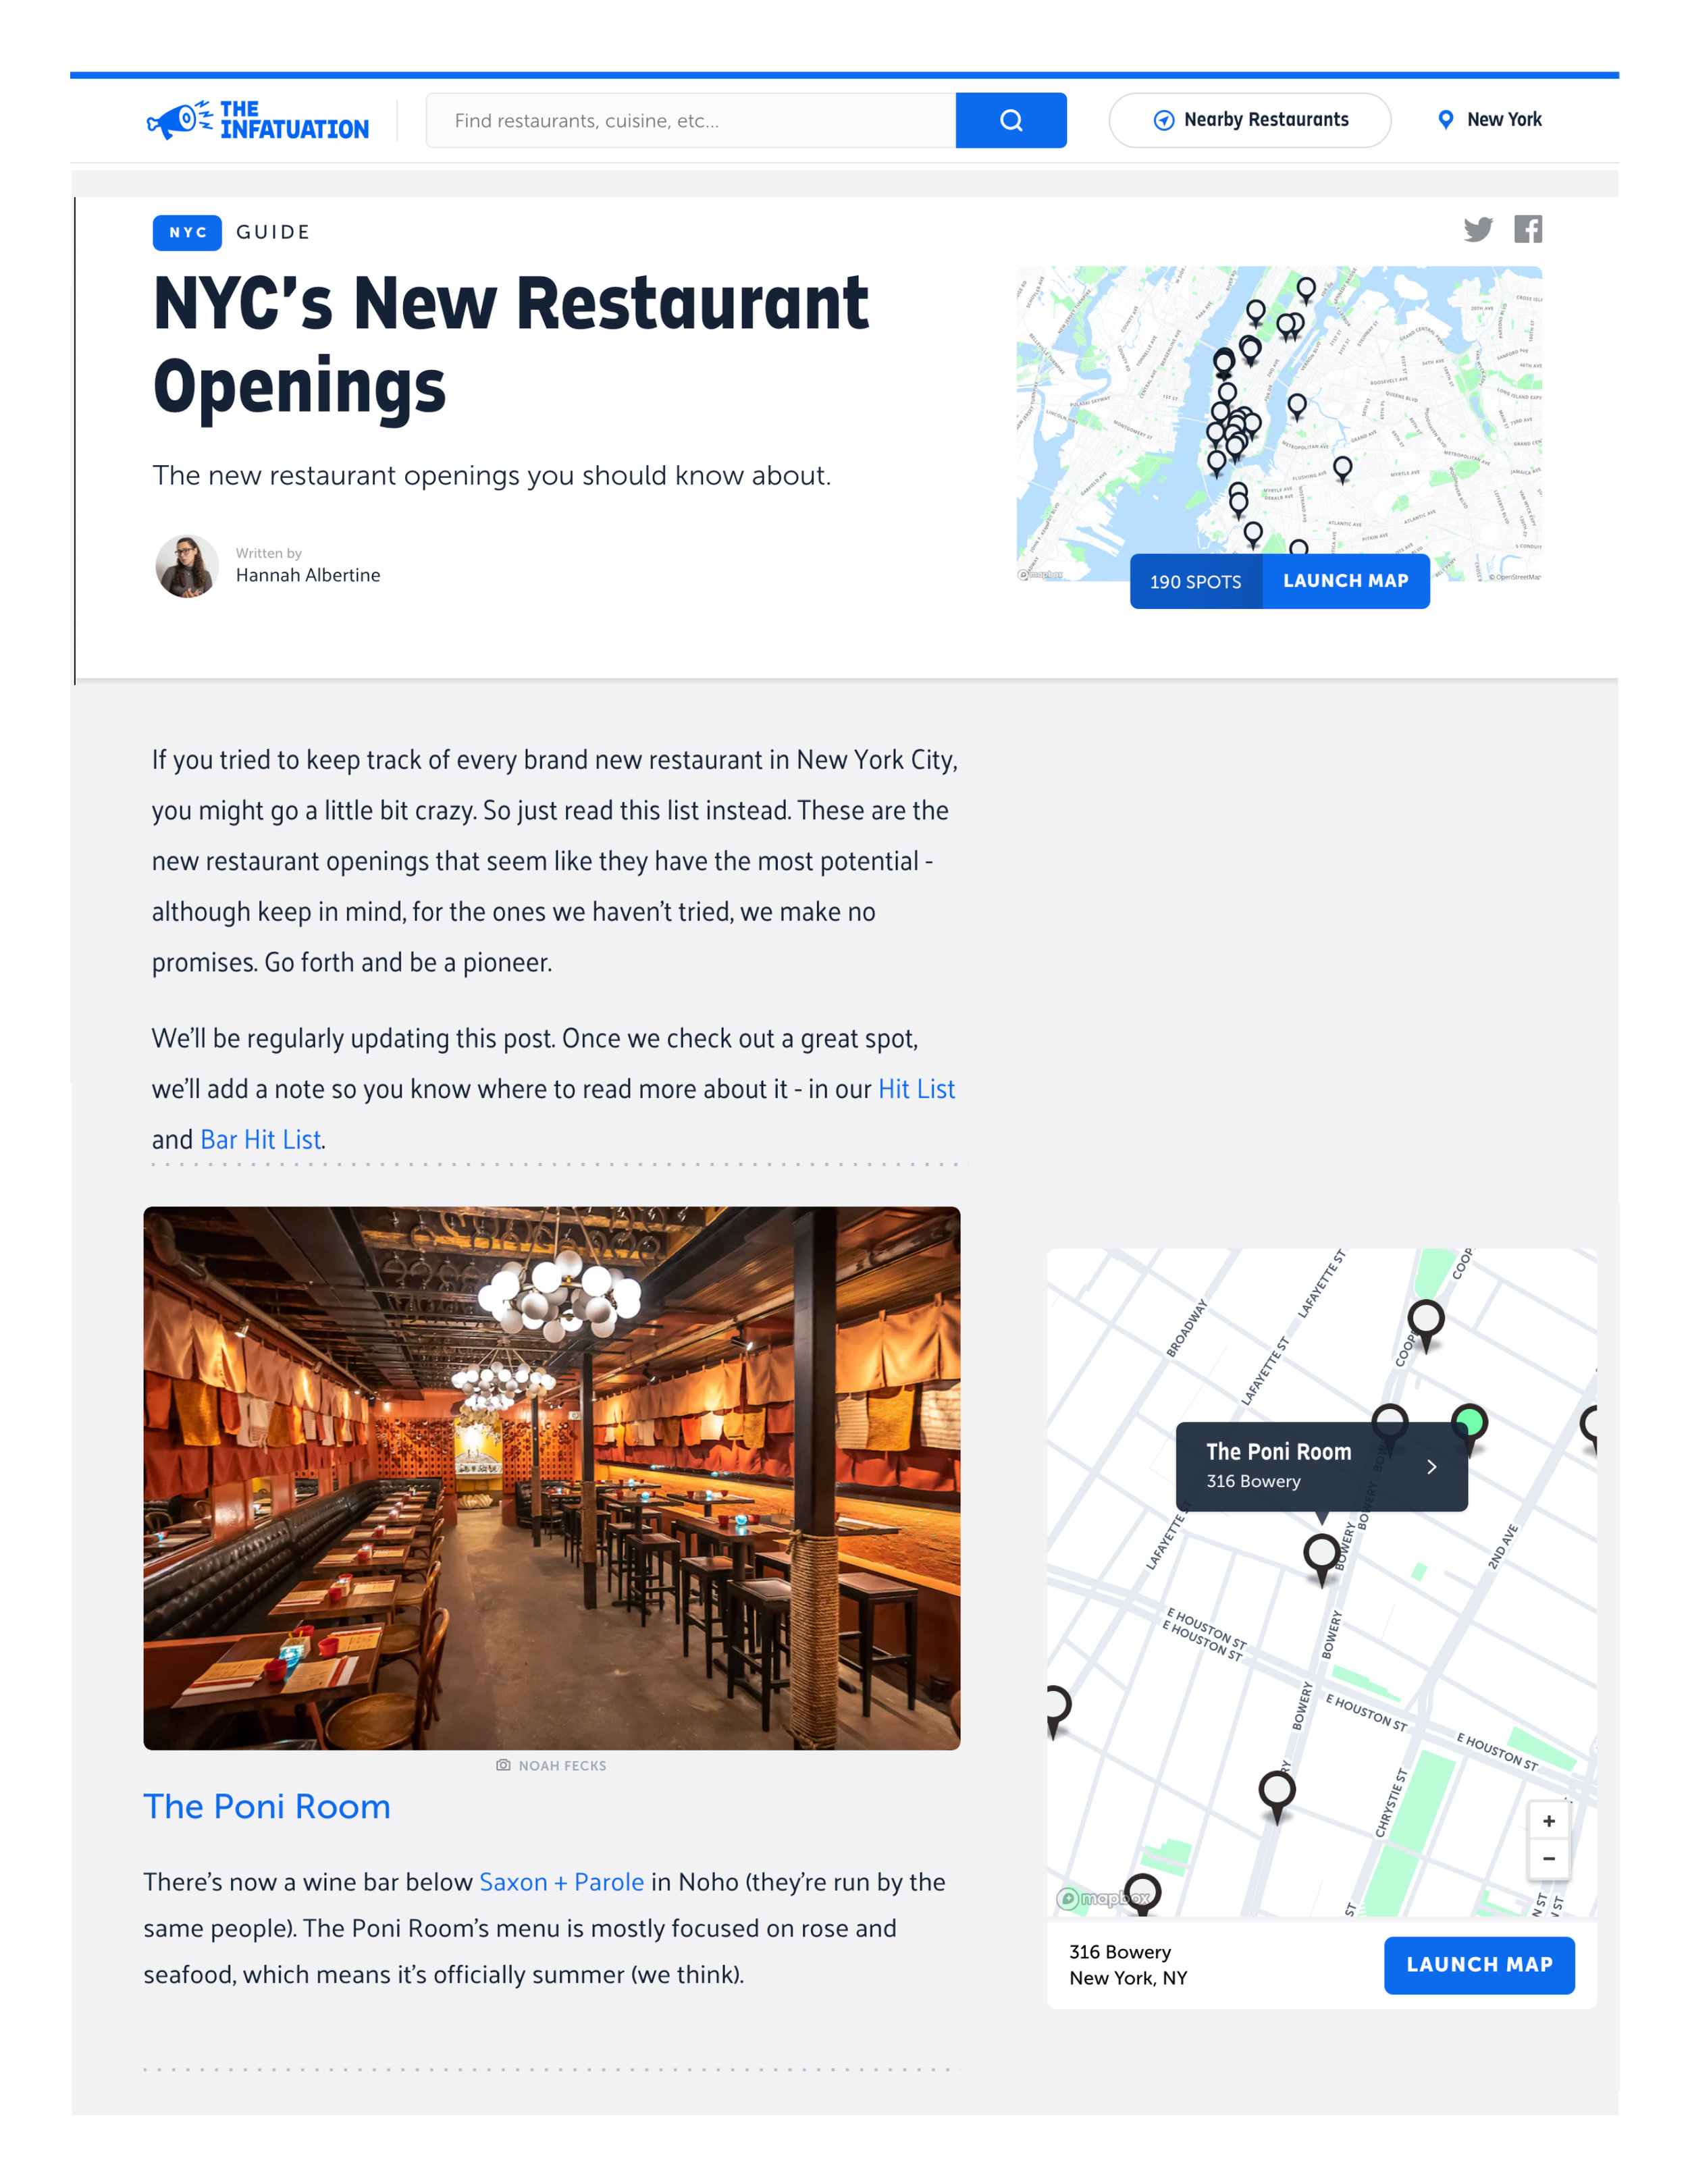 The Infatuation - NYC's New Restaurant Openings